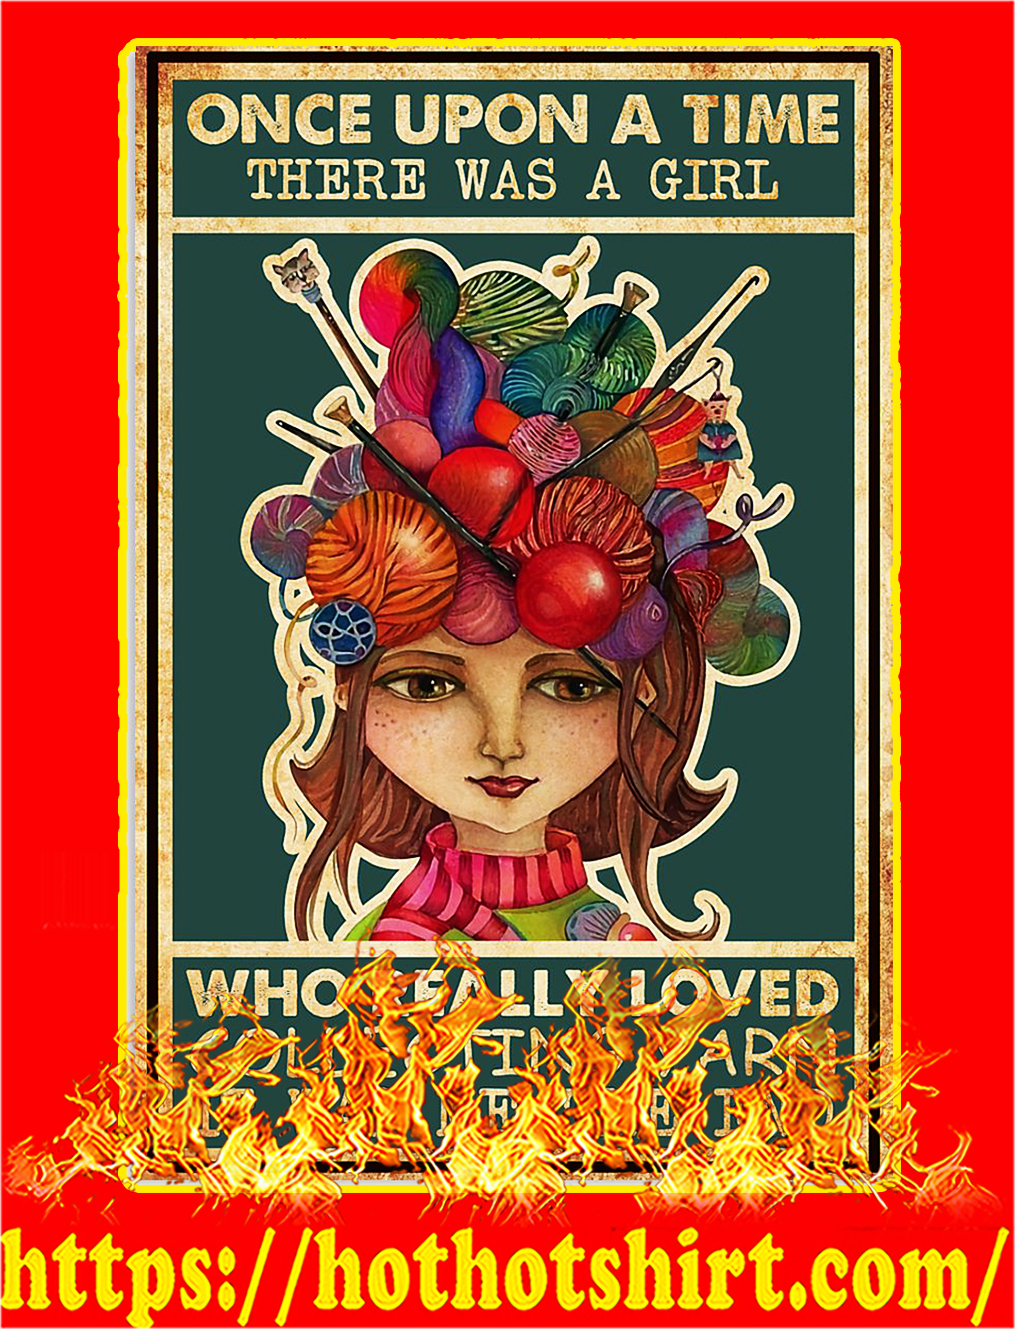 Once upon a time there was a girl who really loved collecting yarn poster - A4